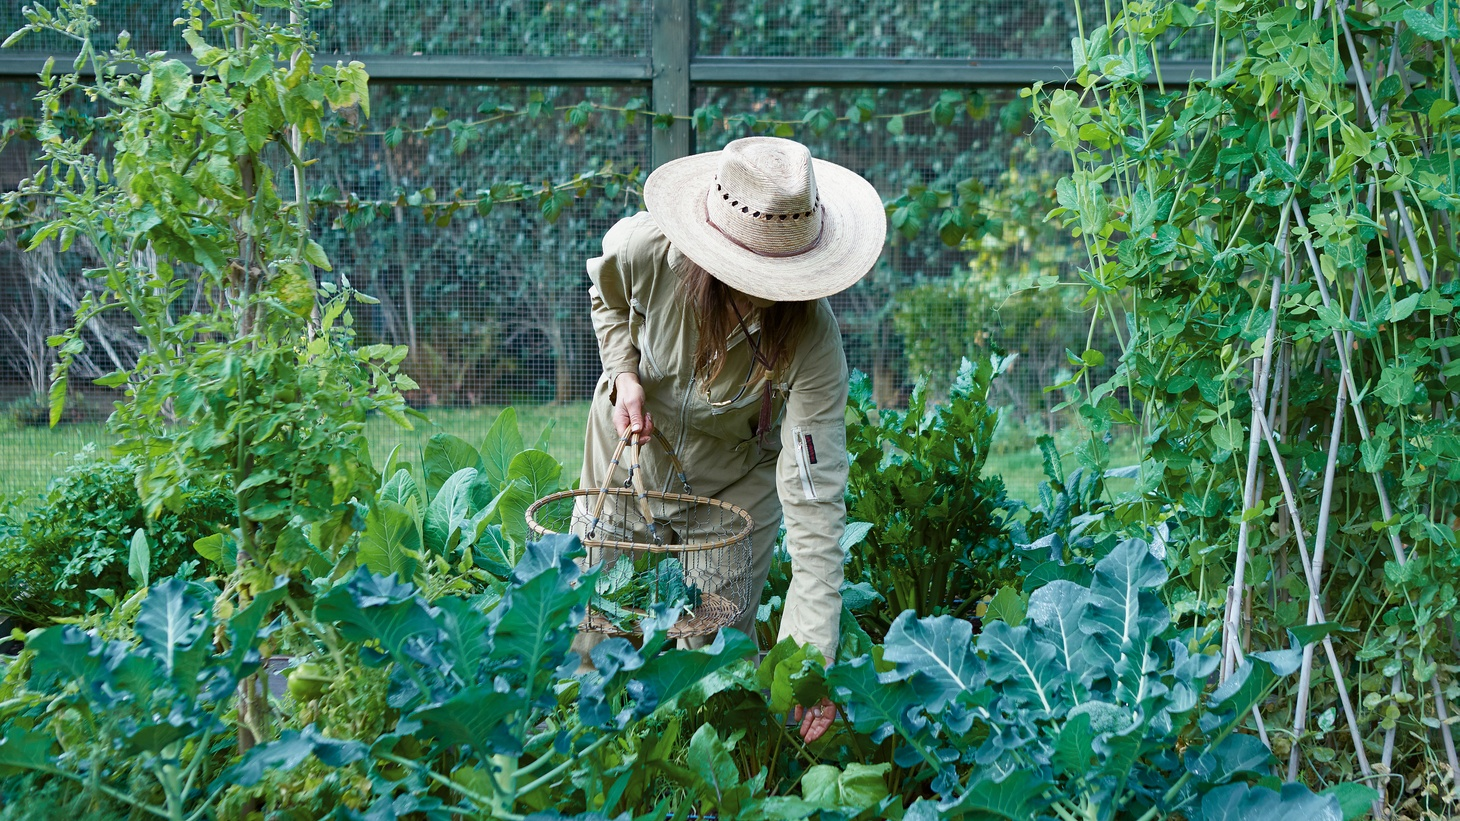 """Excerpted from """"A Garden Can Be Anywhere"""" by Lauri Kranz and Dean Kuipers."""